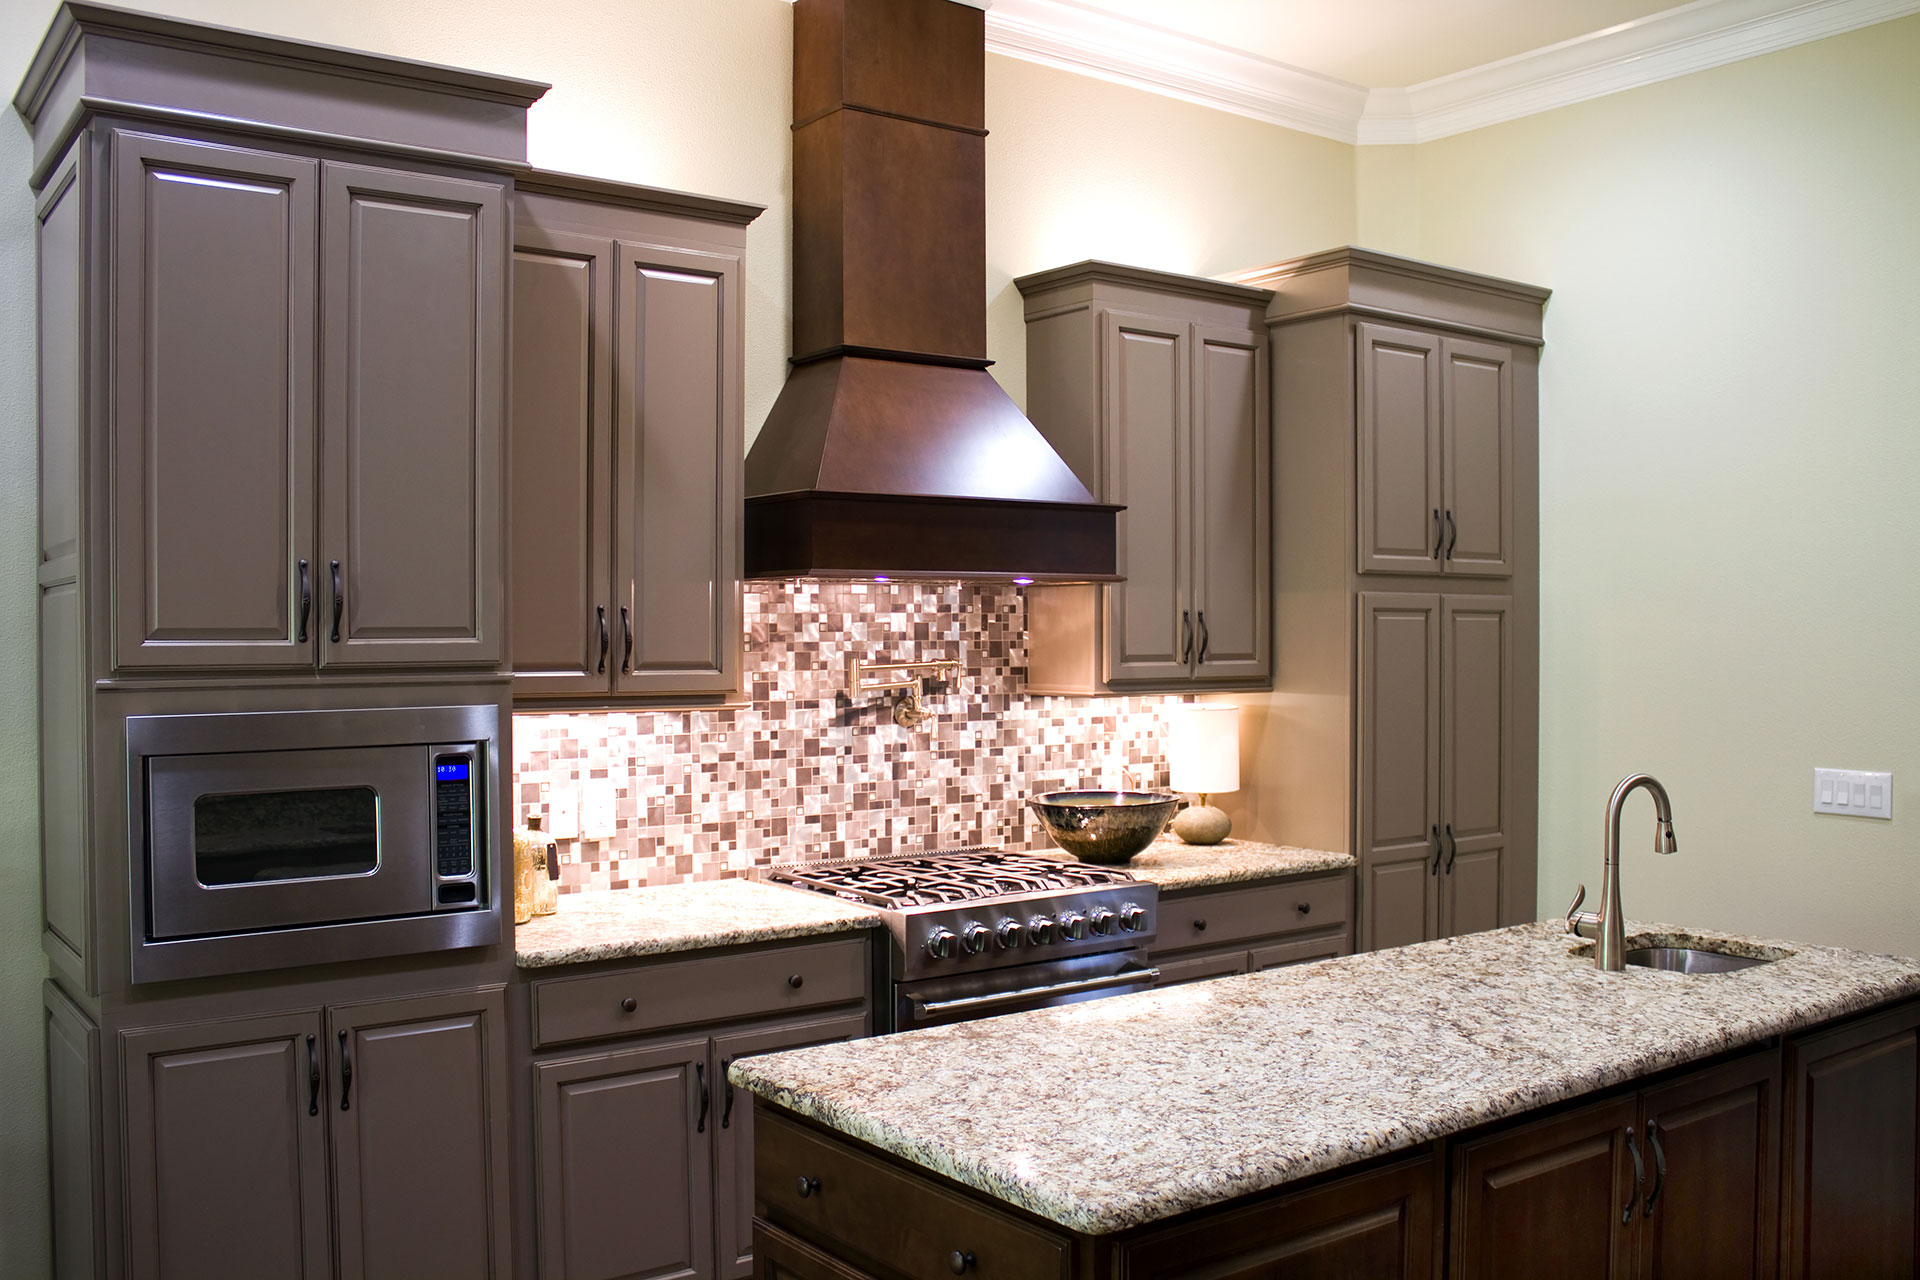 kitchen and bathroom remodeling milos cabinets